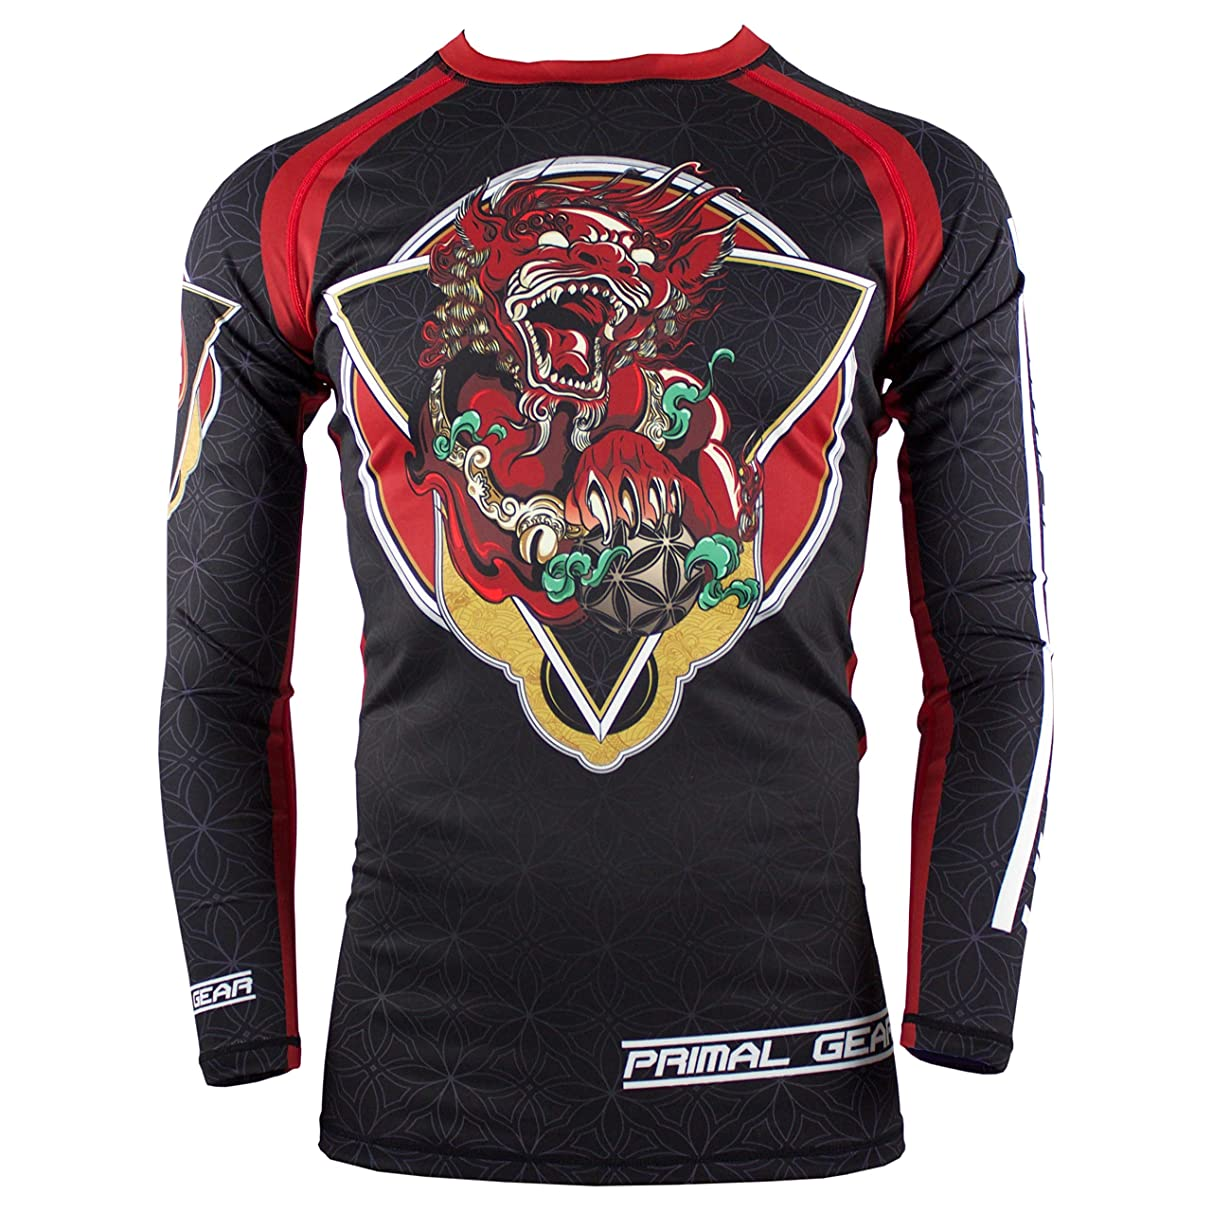 Primal Gear Foo Dog BJJ Compression Base Layer Rash Guard Shirt- BJJ, Jiu Jitsu